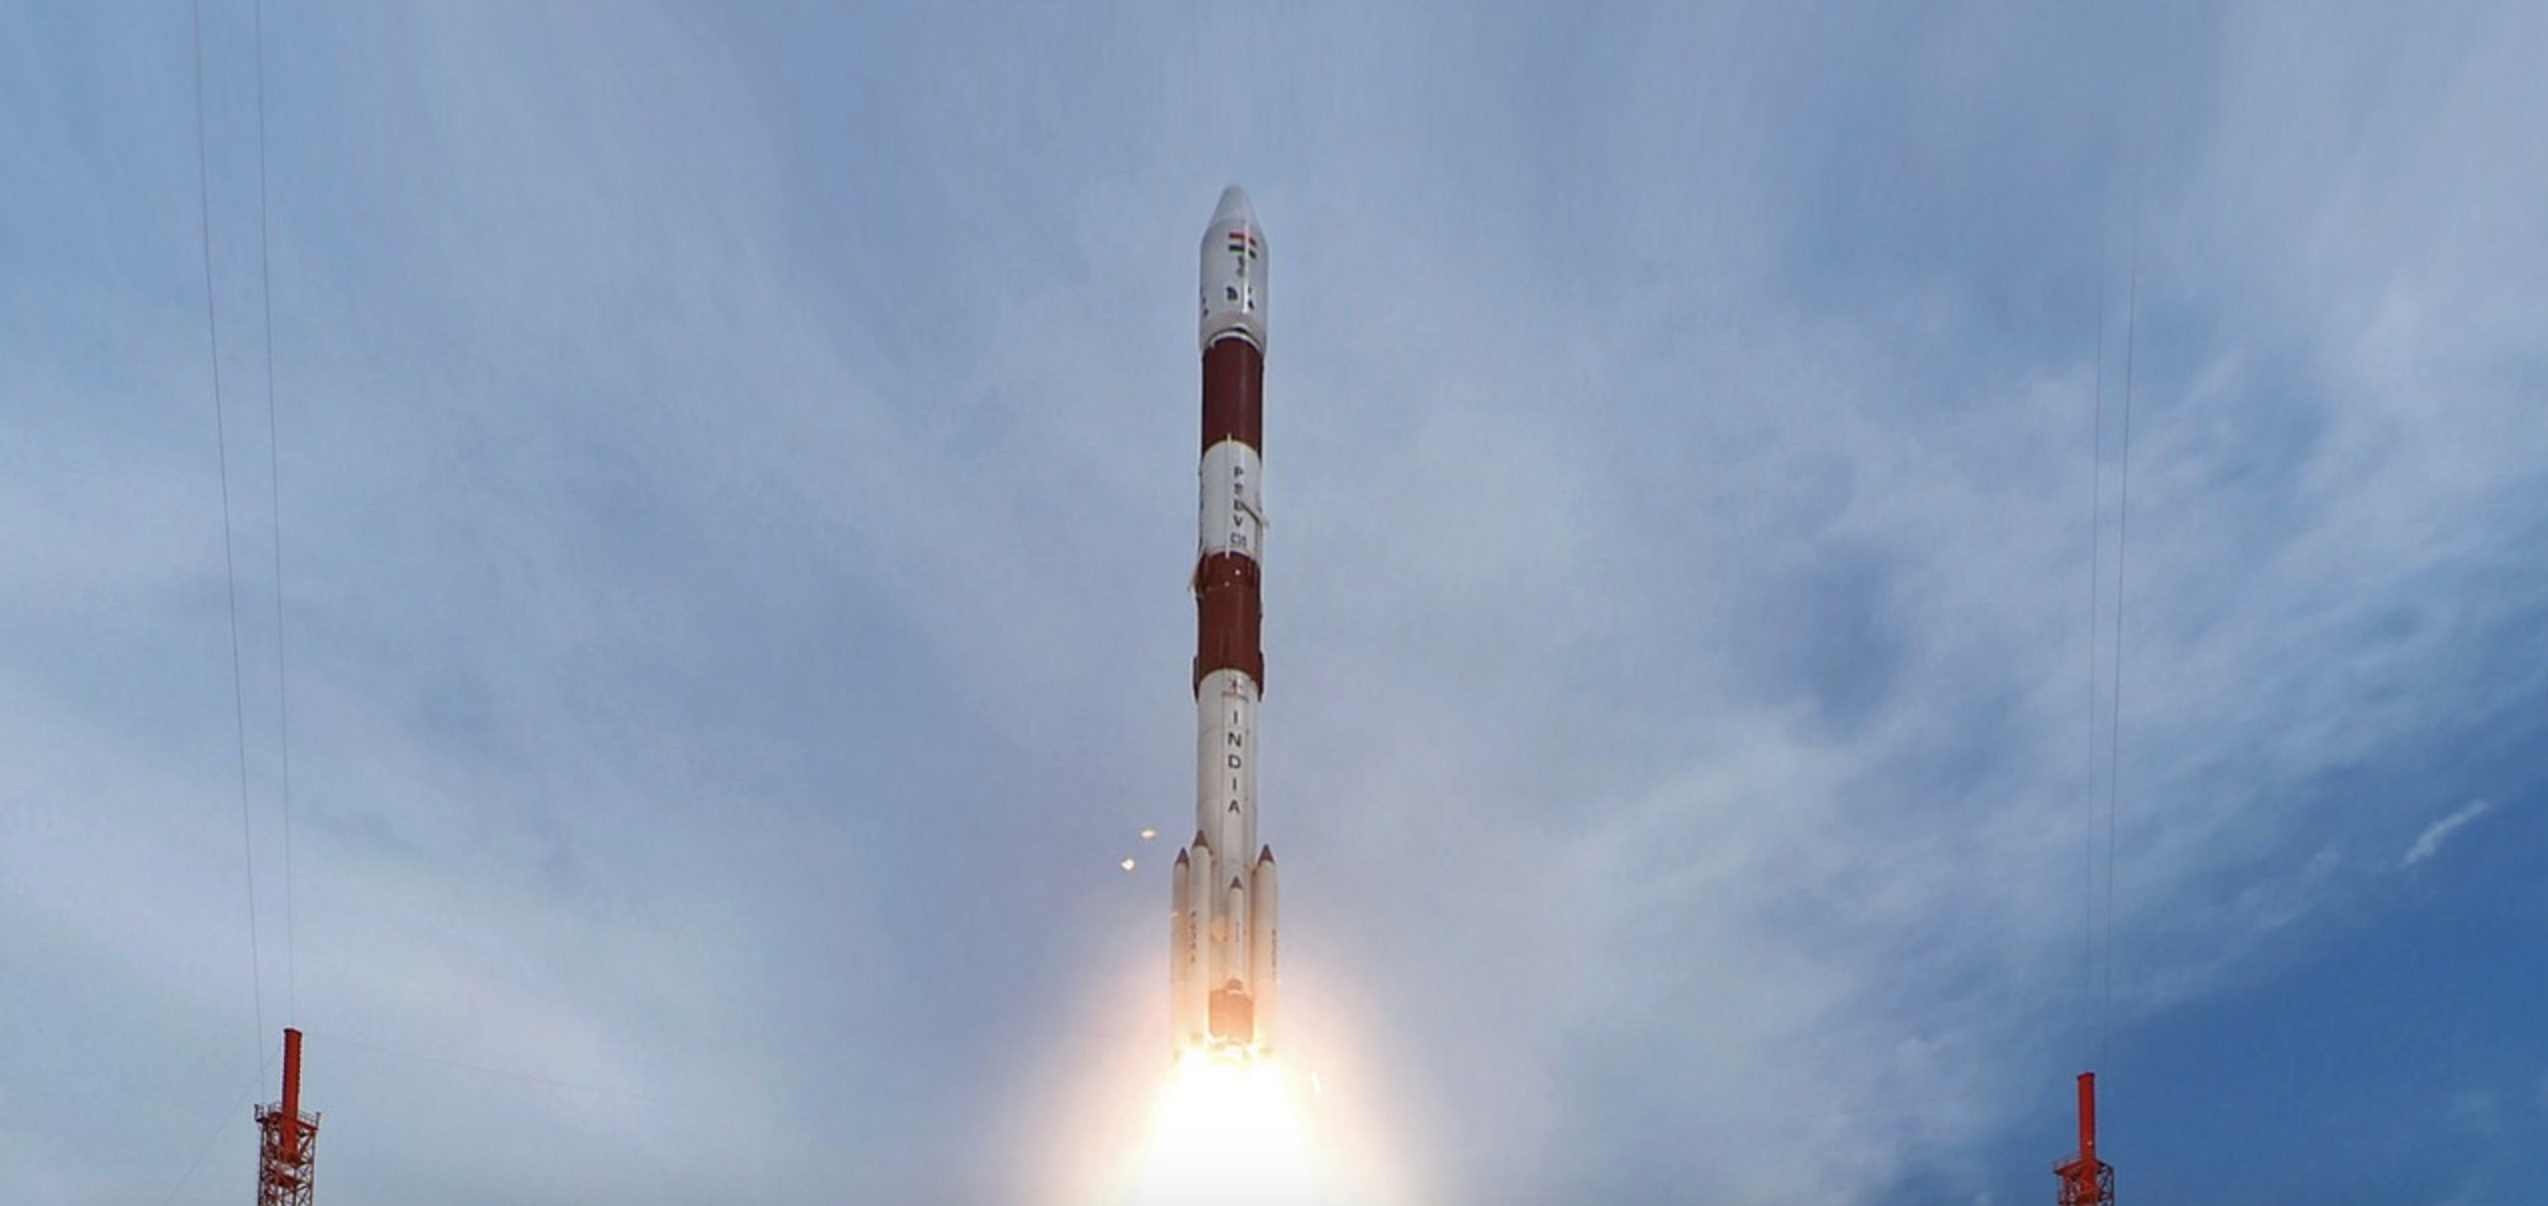 The PSLV C35 takes from from the Satish Dhawan Space Centre, Sriharikota, on September 26, 2016. Credit: ISRO